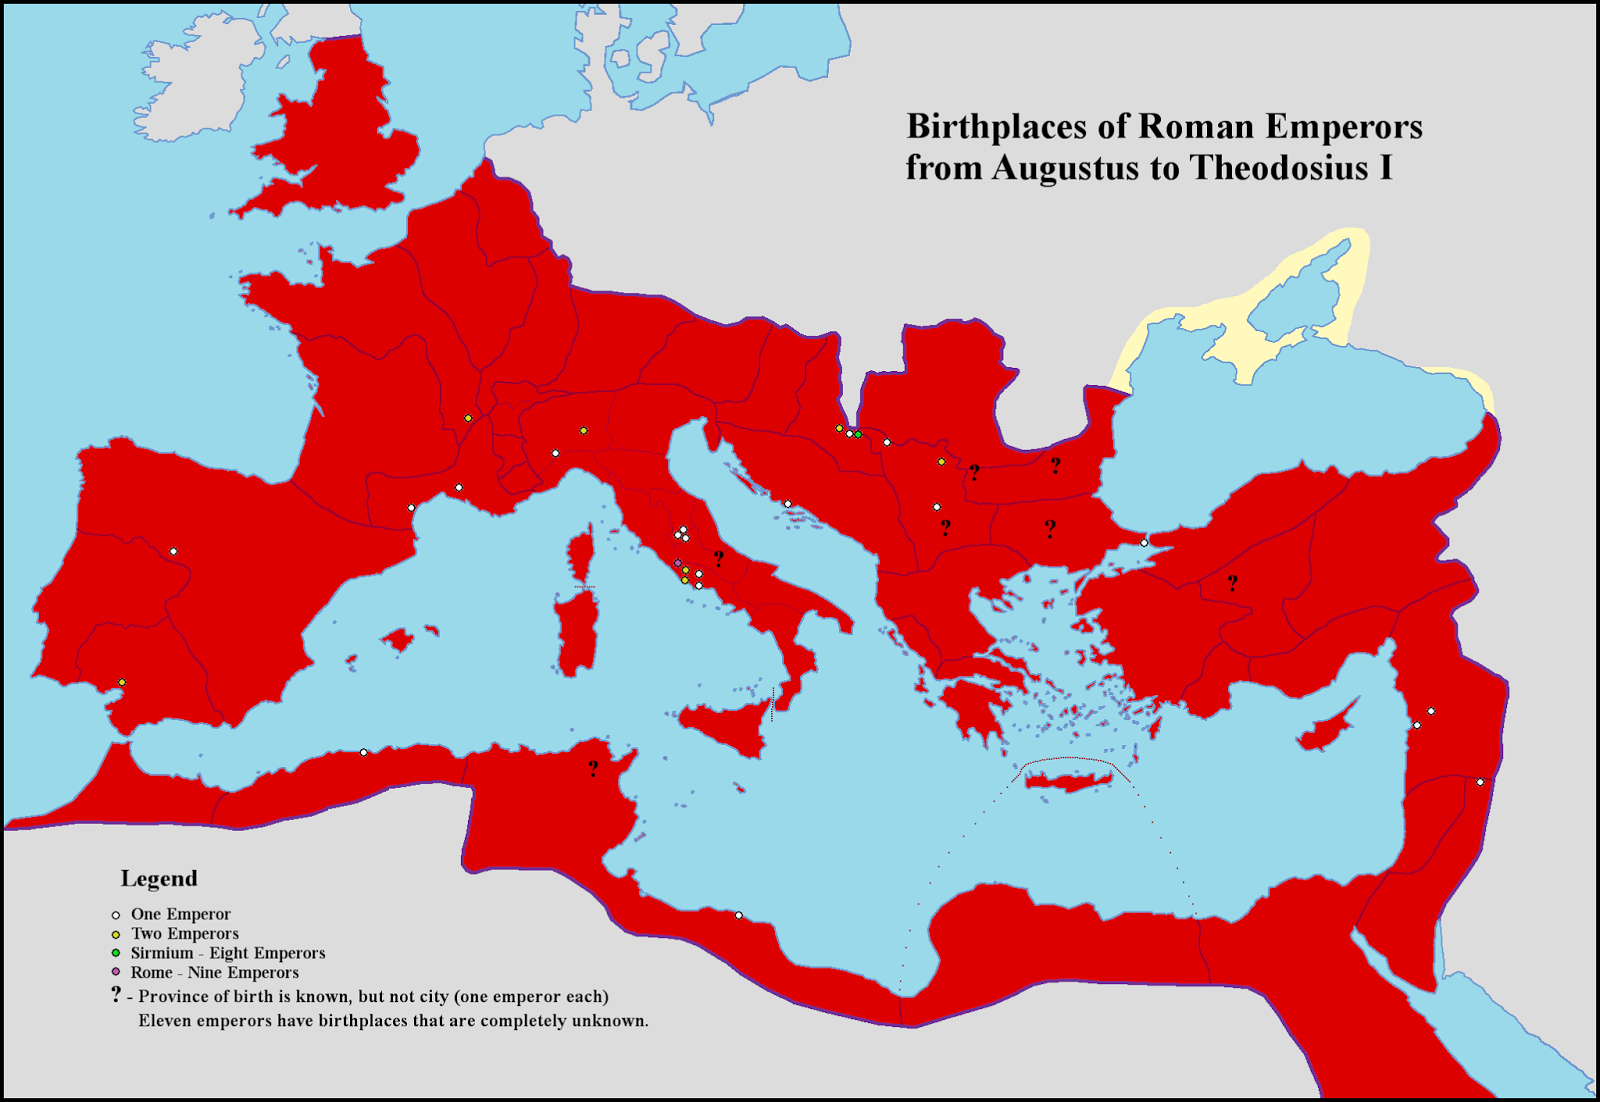 Birthplaces of Roman Emperors from Augustus to Theodosius I